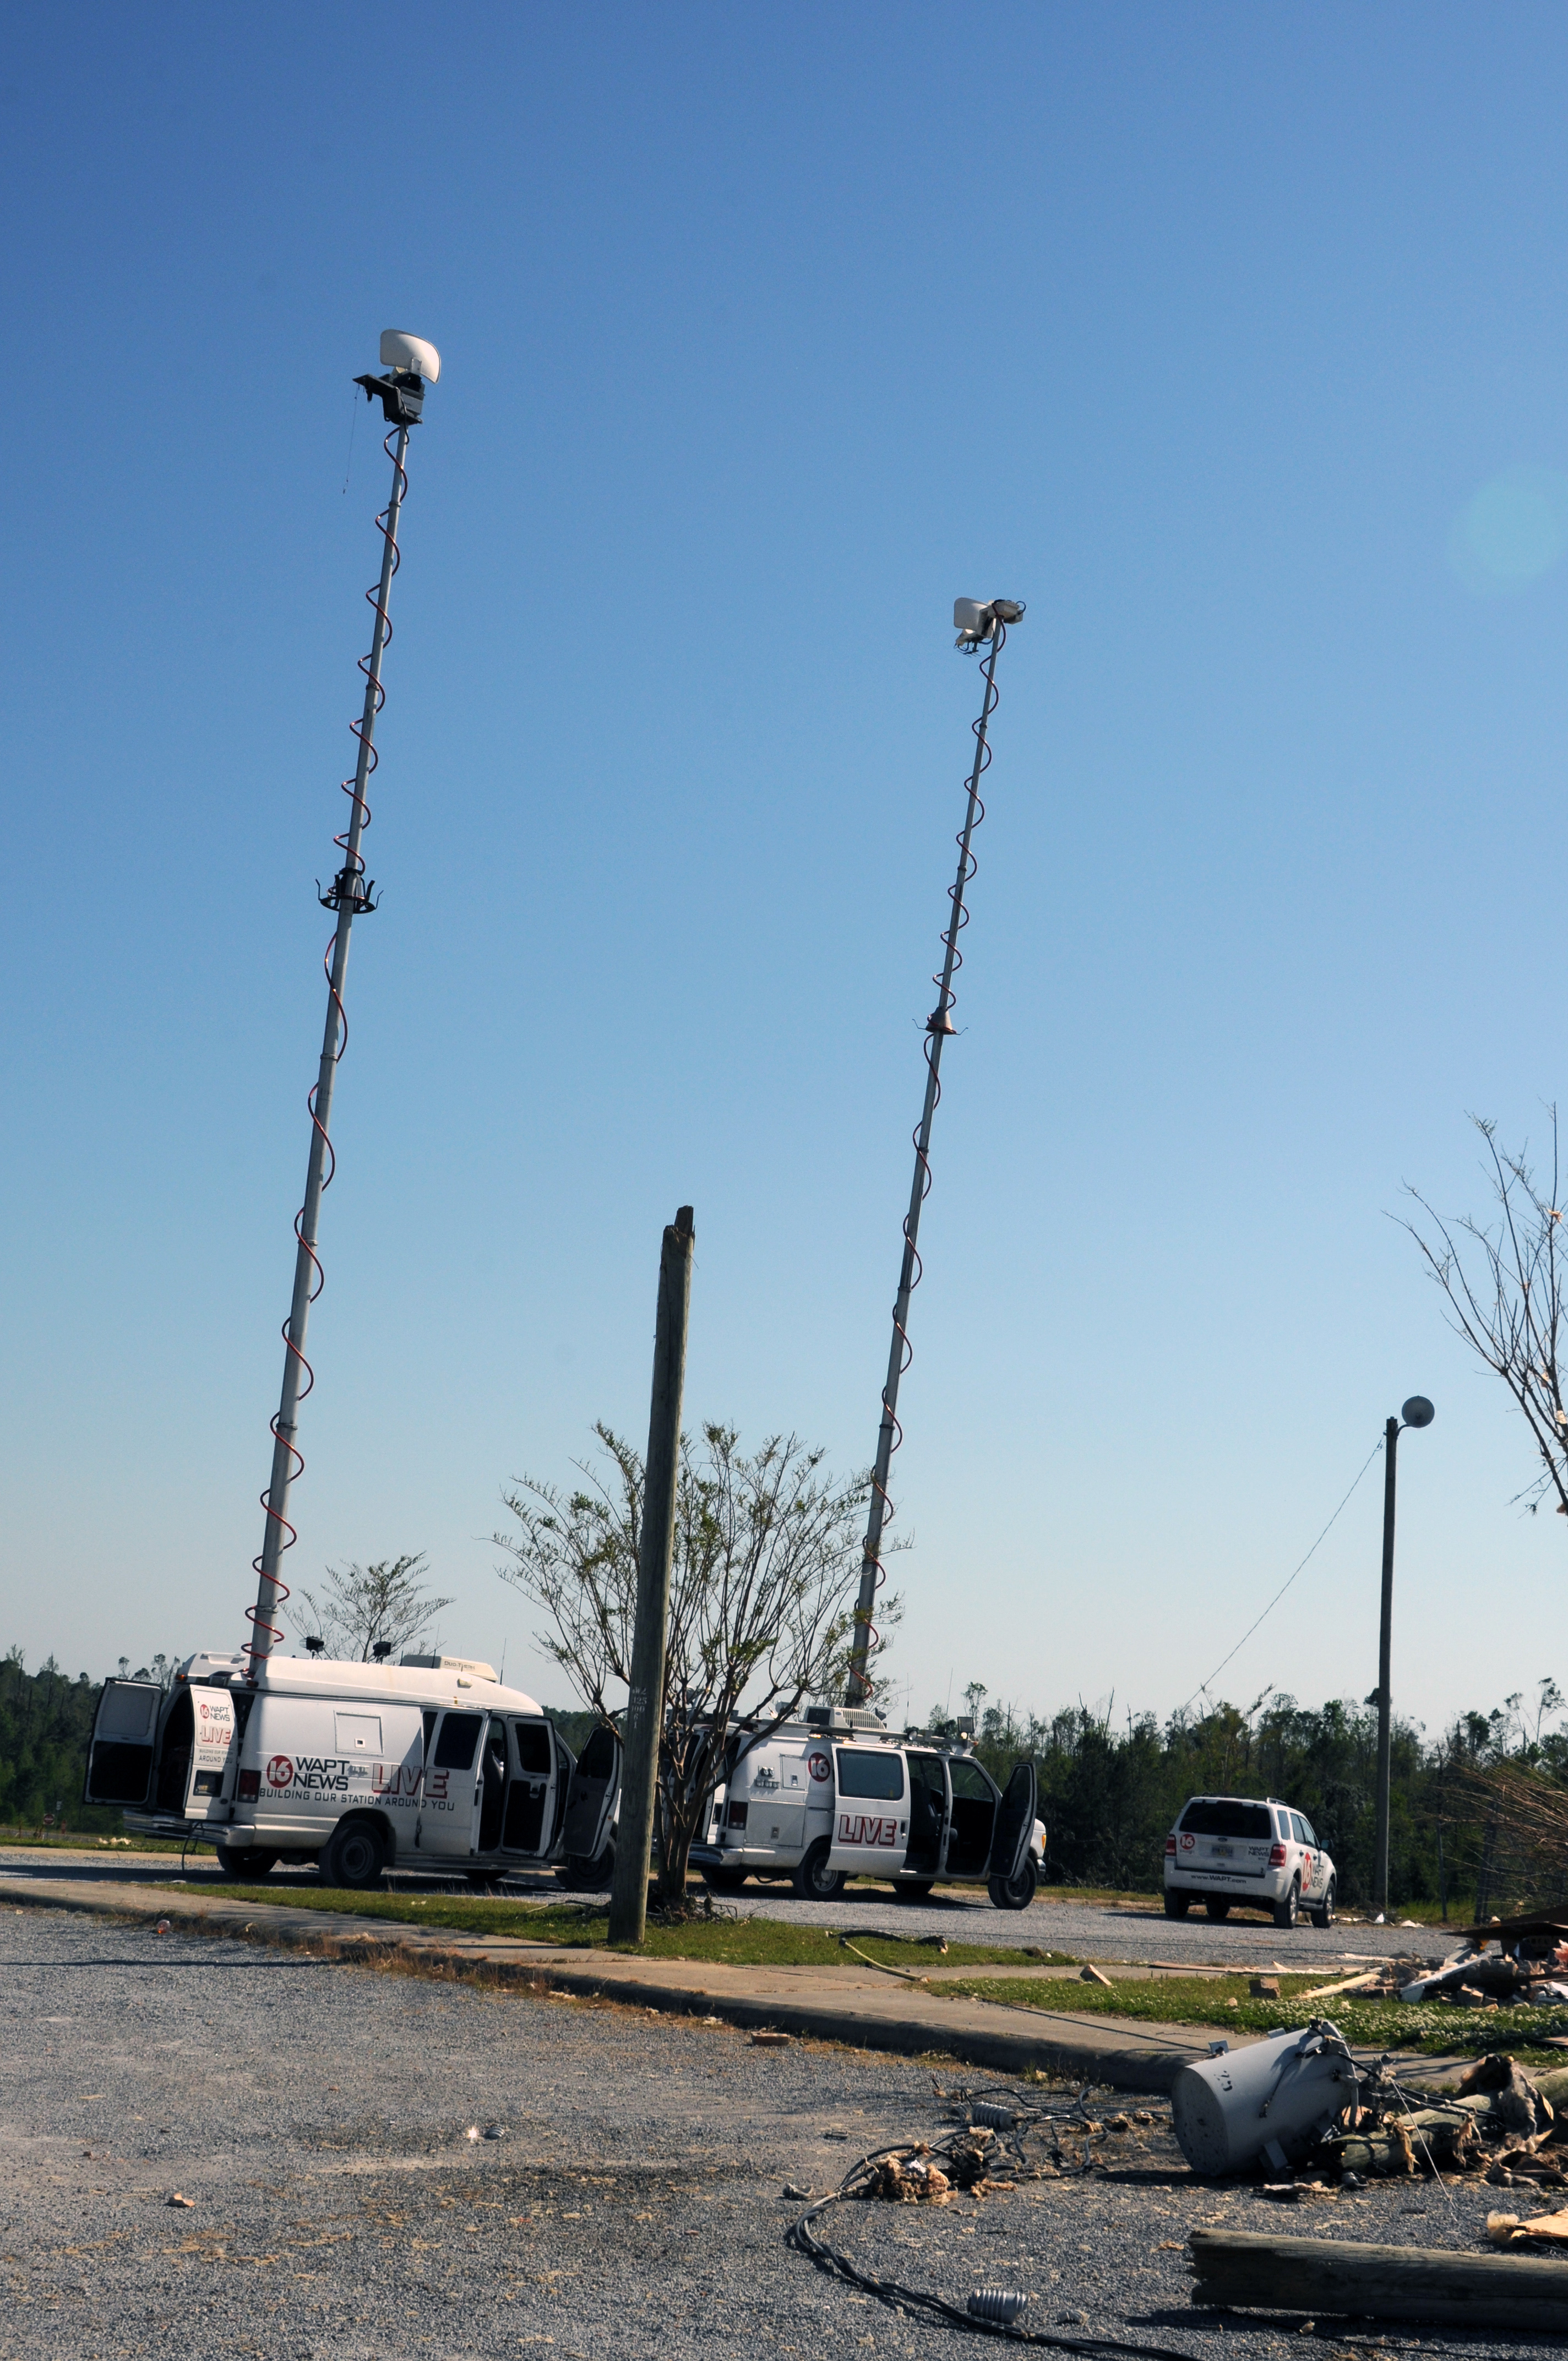 File:FEMA - 44035 - News Media Set Up at State-FEMA Disaster